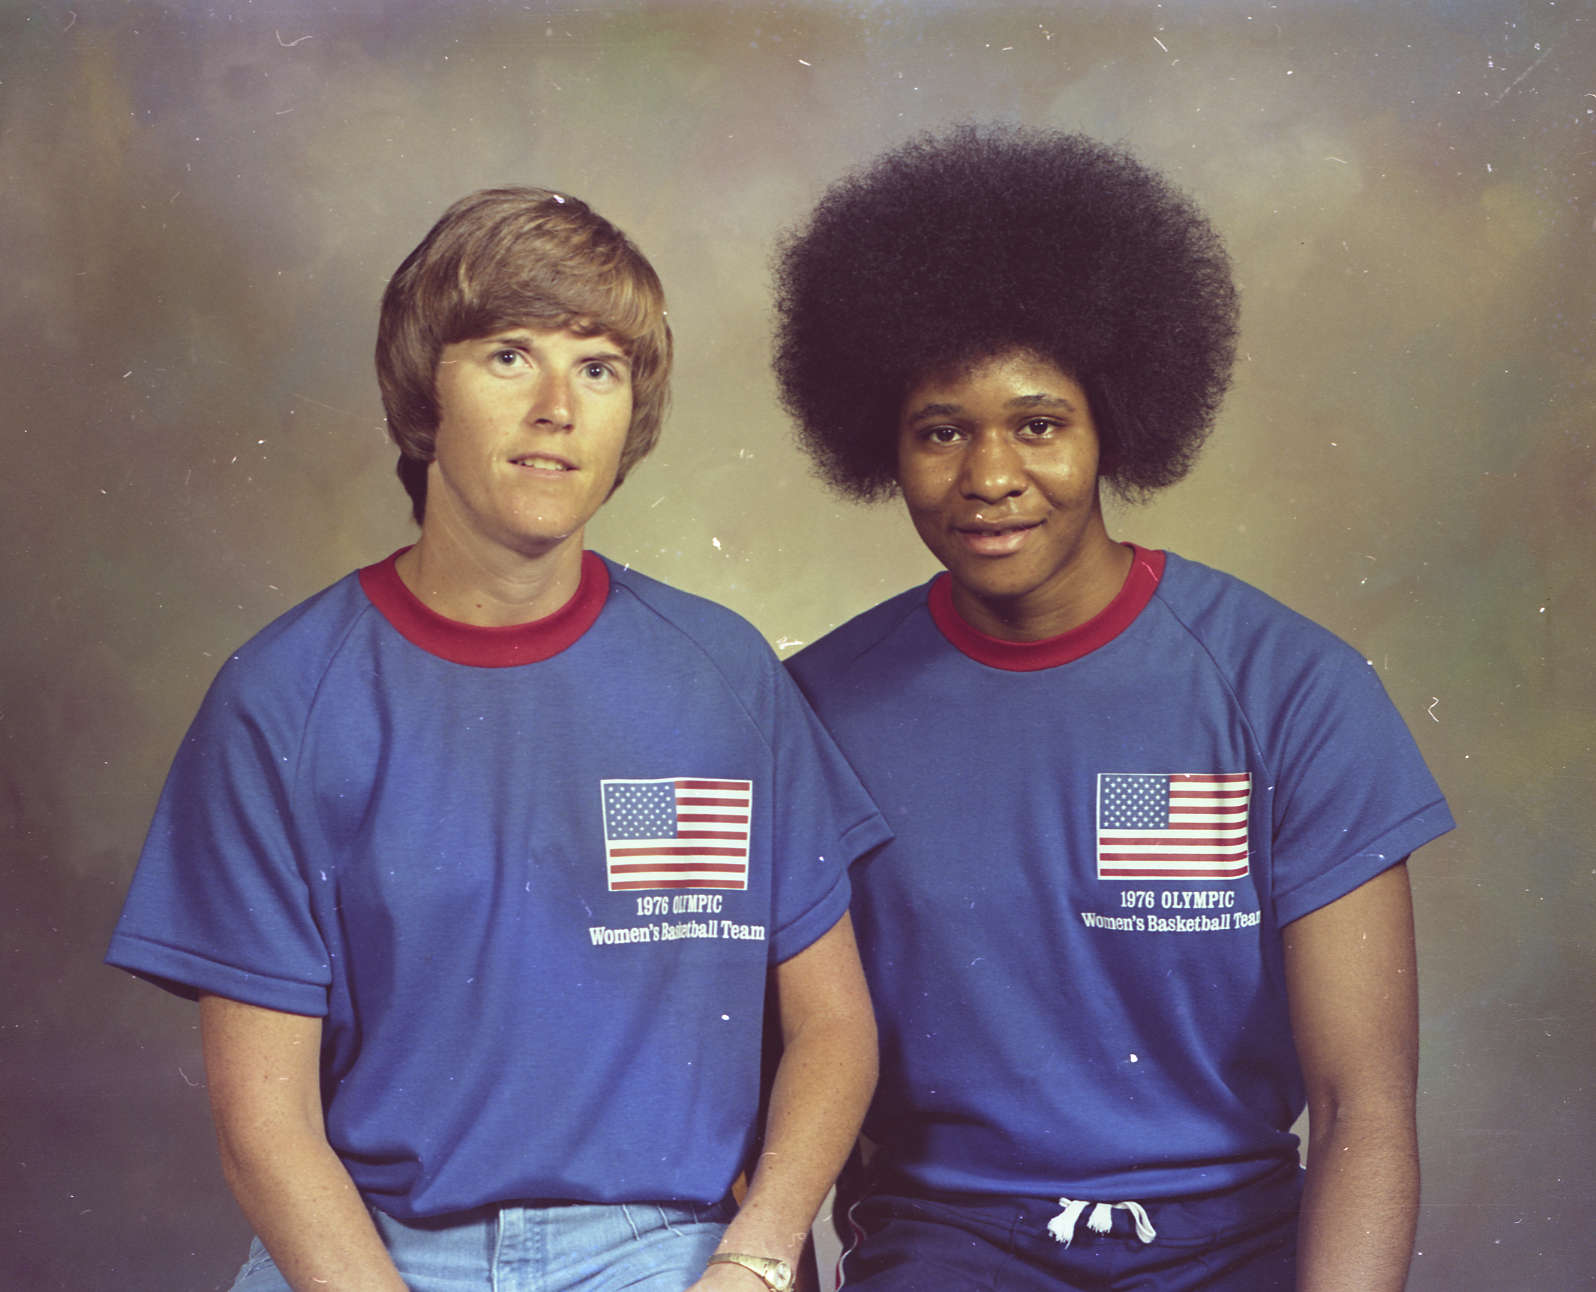 "U.S. Summer Olympic Women's Basketball Coach Billie Jean Moore and team member Charlotte Lewis.  T  he 1976 Summer Olympic Games were held in Montreal, Canada.  It was the first time women's basketball was introduced into competition at the Games.  On that team was a 6'2"" junior from Illinois State who was no stranger to international competition.  Peoria native Charlotte Lewis had competed the year before at the 1975 Pan American Games and brought home a gold medal.  In order to compete in the 1976 Summer Olympics, the U.S. Women's team needed to qualify.  There were only two spots open but thanks to their 5-0 record at the Olympic Qualifying Tournament, the team made it to the Games.  Lewis played Center at the Games and played in two of the five matches.  The team went 3-2 and brought home the silver medal."